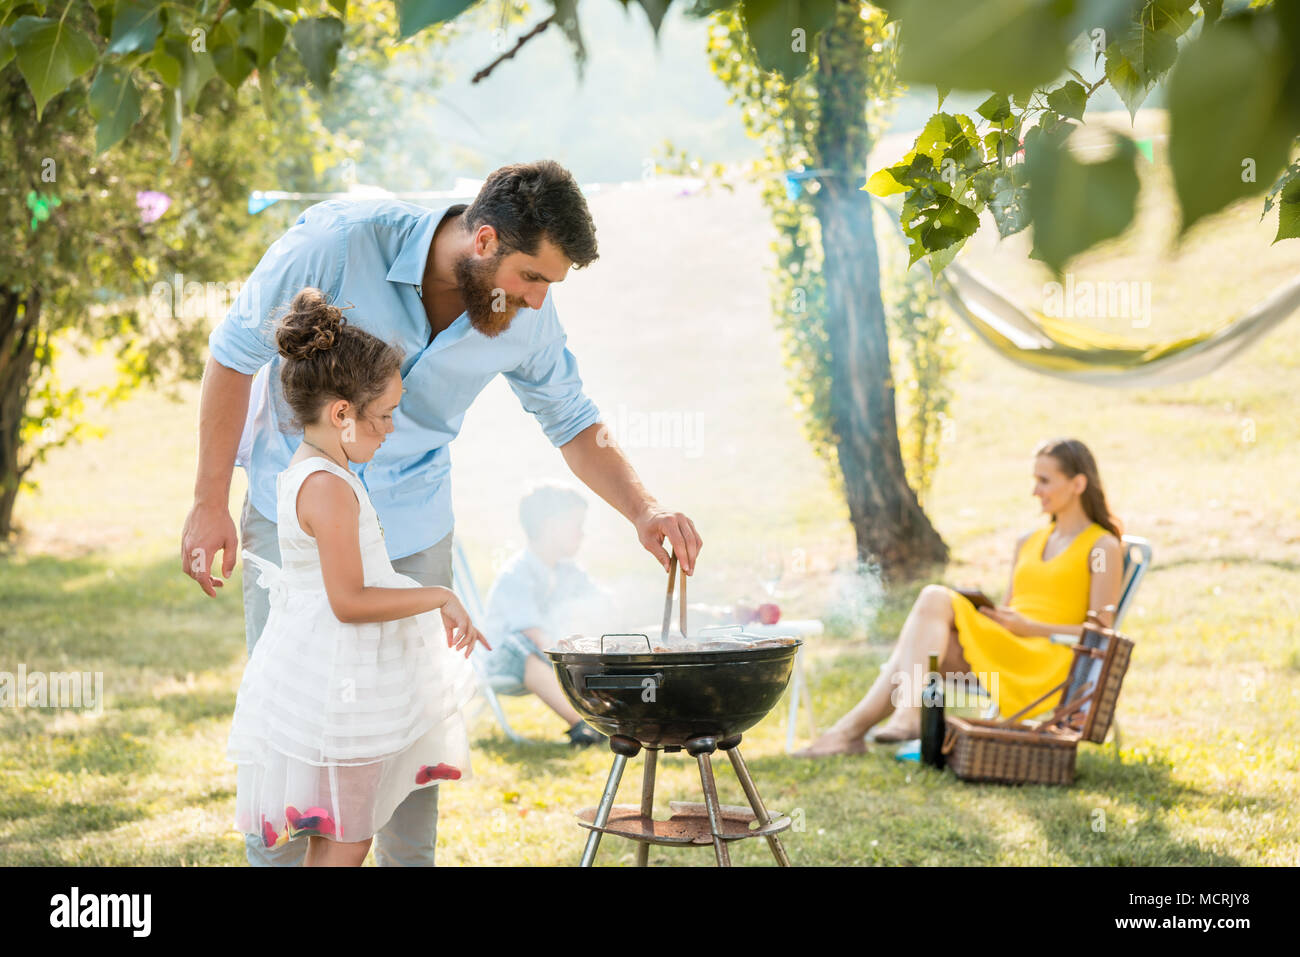 Girl watching father preparing meat on barbecue grill during family picnic - Stock Image